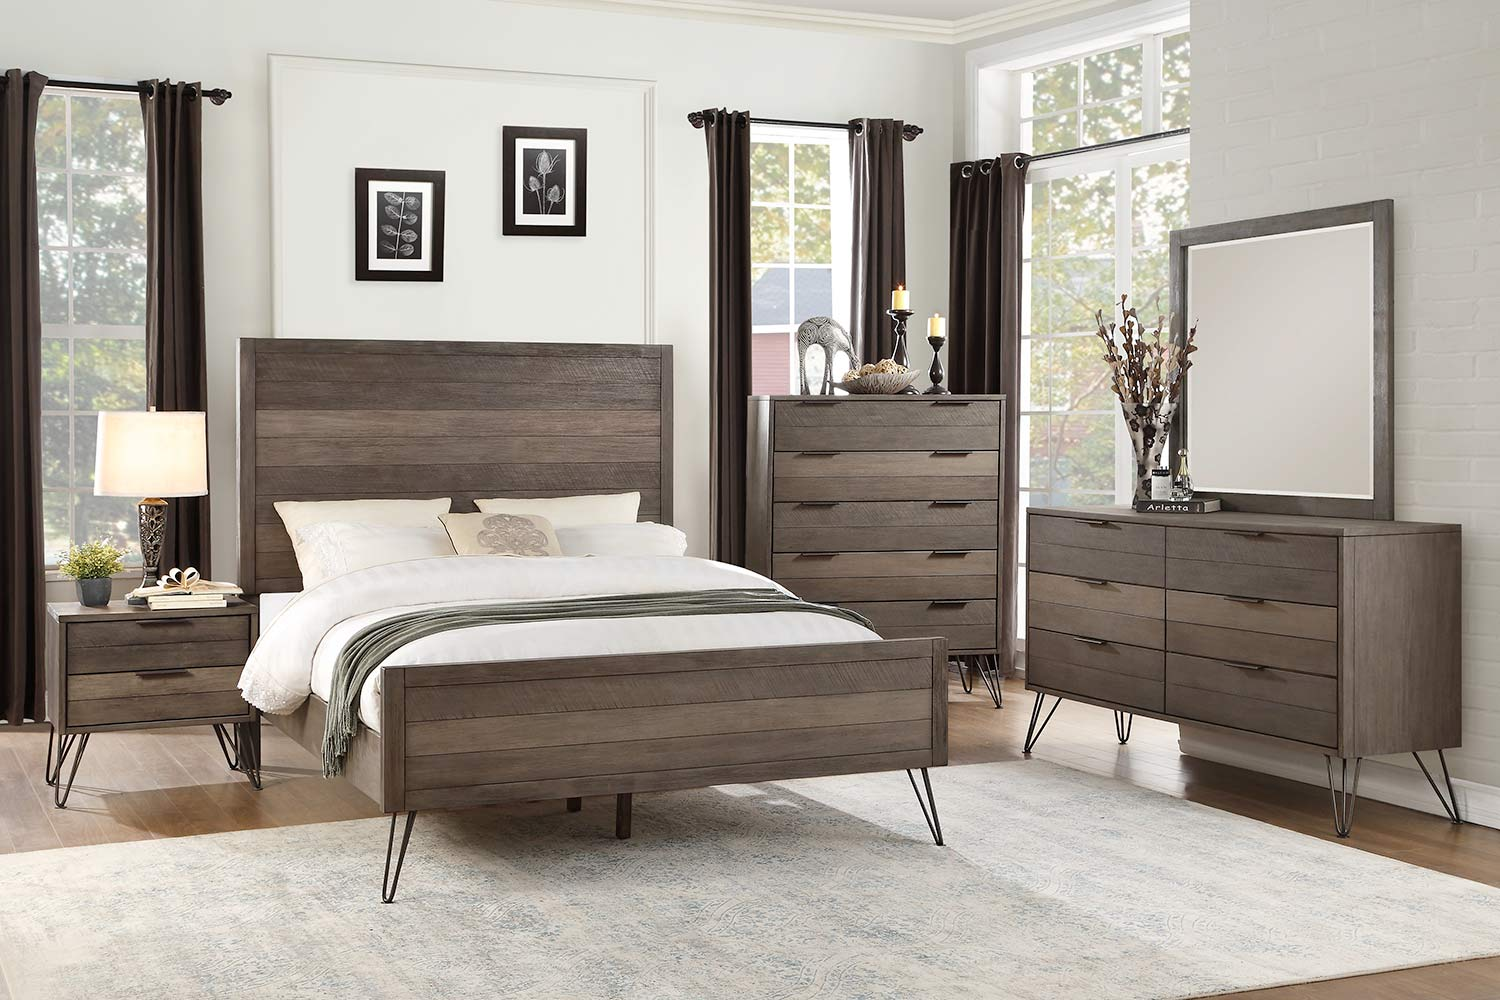 Homelegance Urbanite Bedroom Set - Brown-Gray